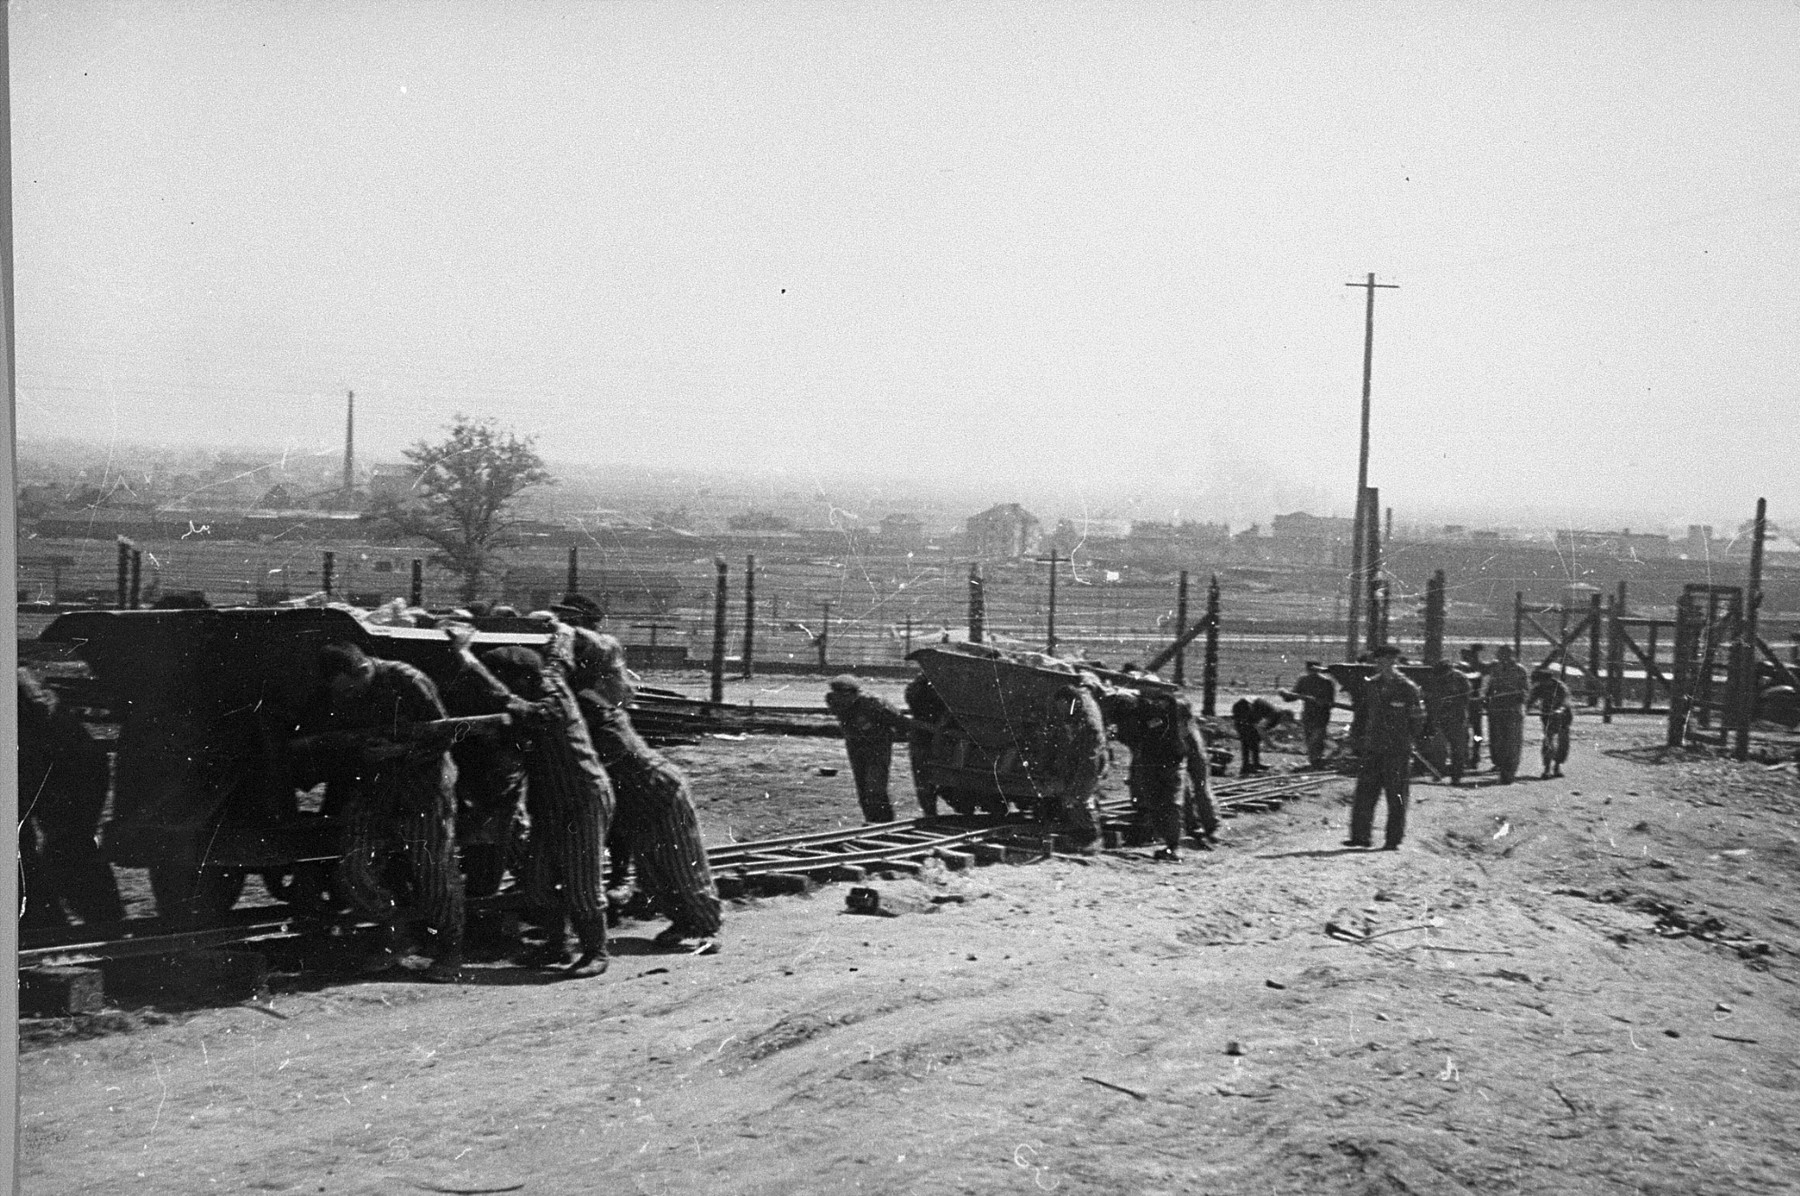 Jewish prisoners in Plaszow at forced labor.  The man at right is a Kapo.